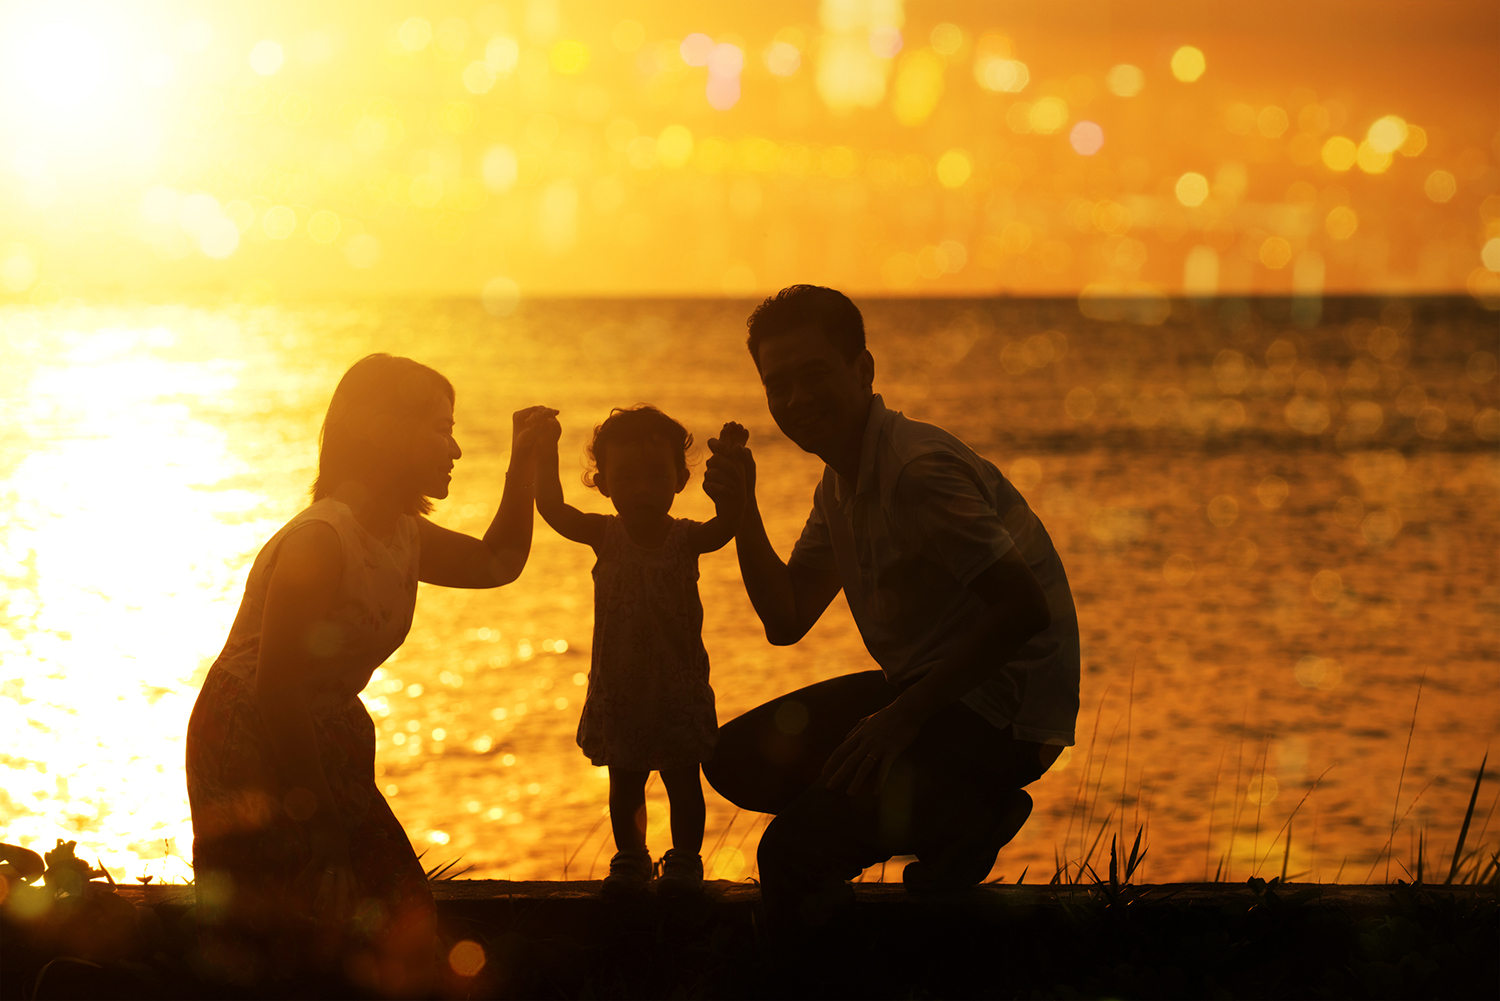 Mother and father share a bonding experience with their young child by holding hands on an ocean beach at sunset.